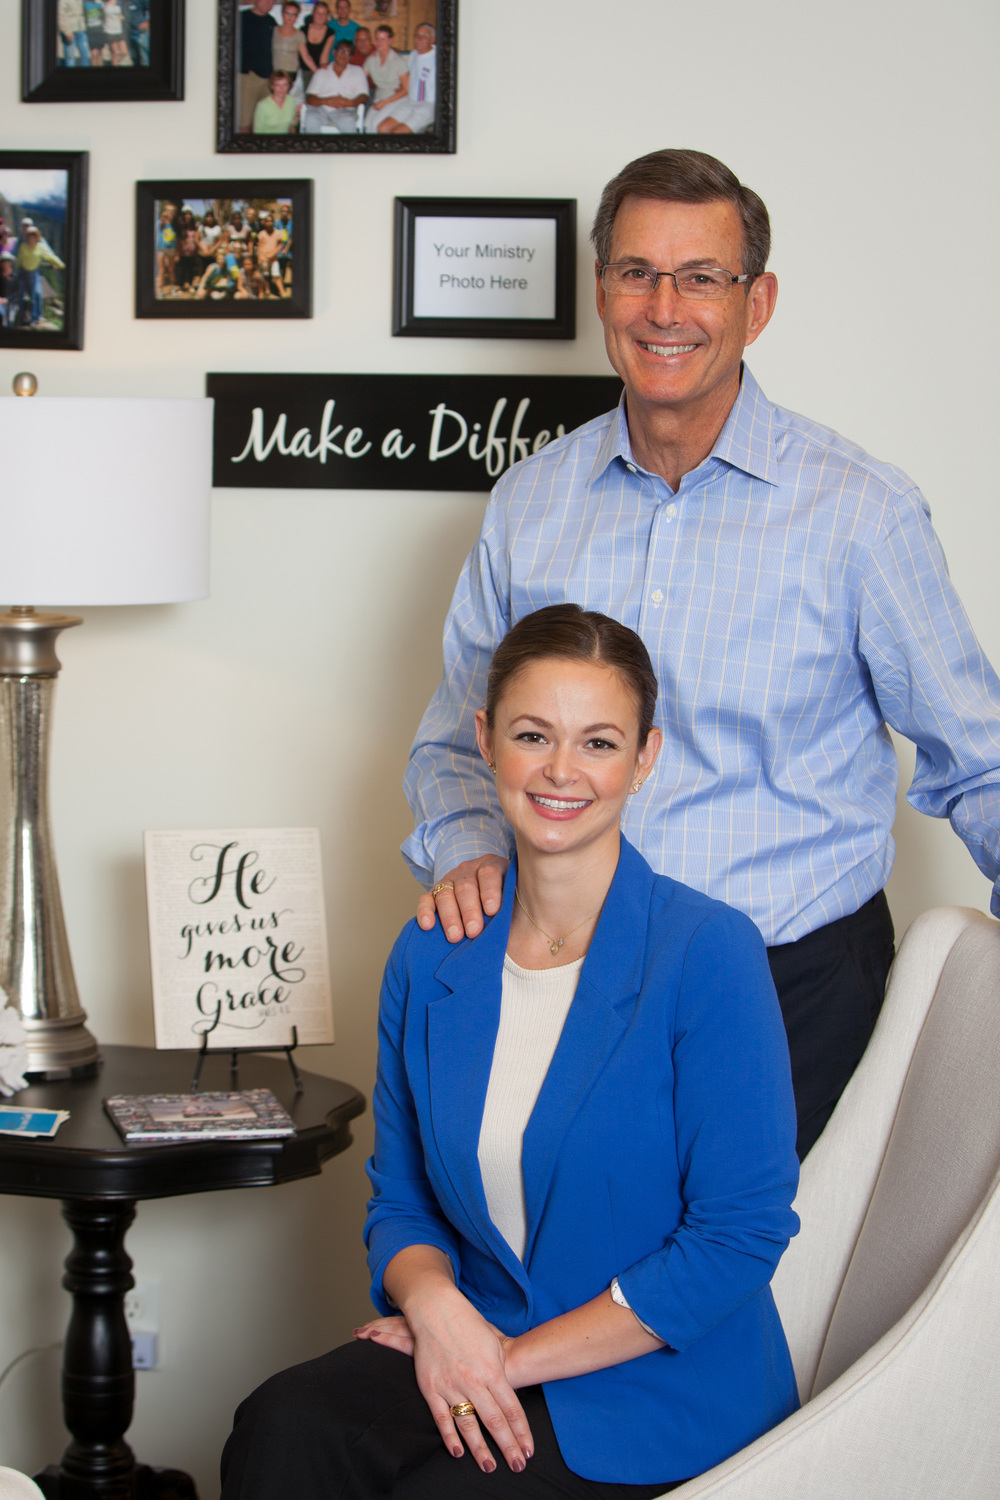 We are a father/daughter team focused on wealth management from a biblical perspective.